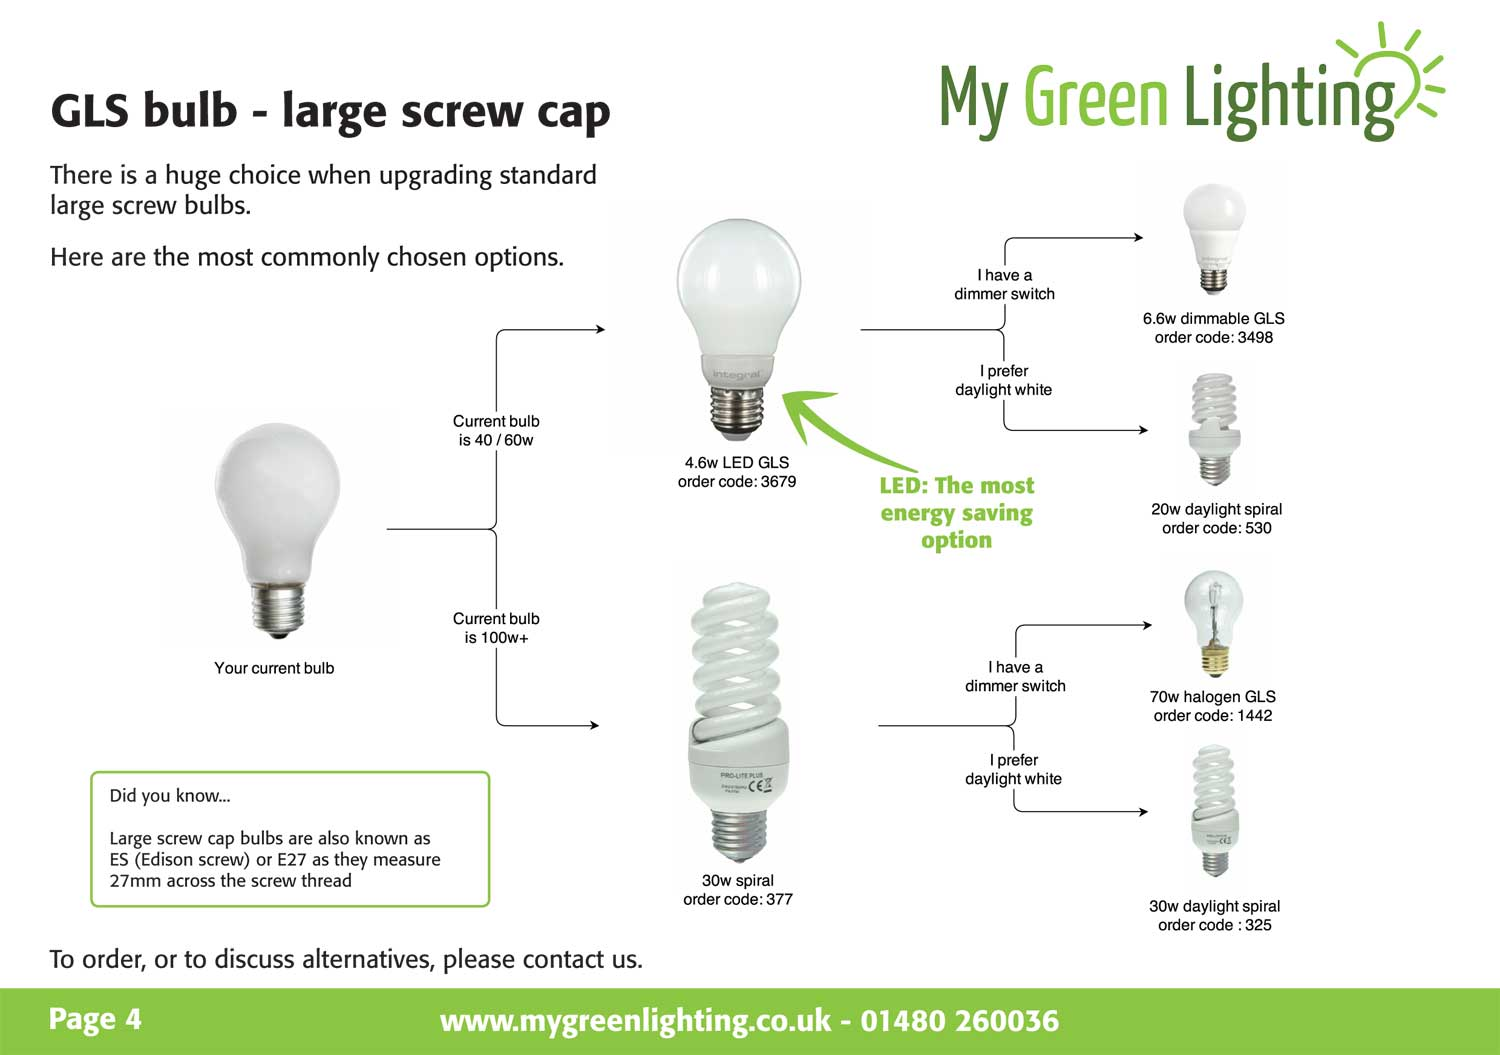 GLS large screw bulbs from the Simple Energy Saving Guide to replacing common household bulbs